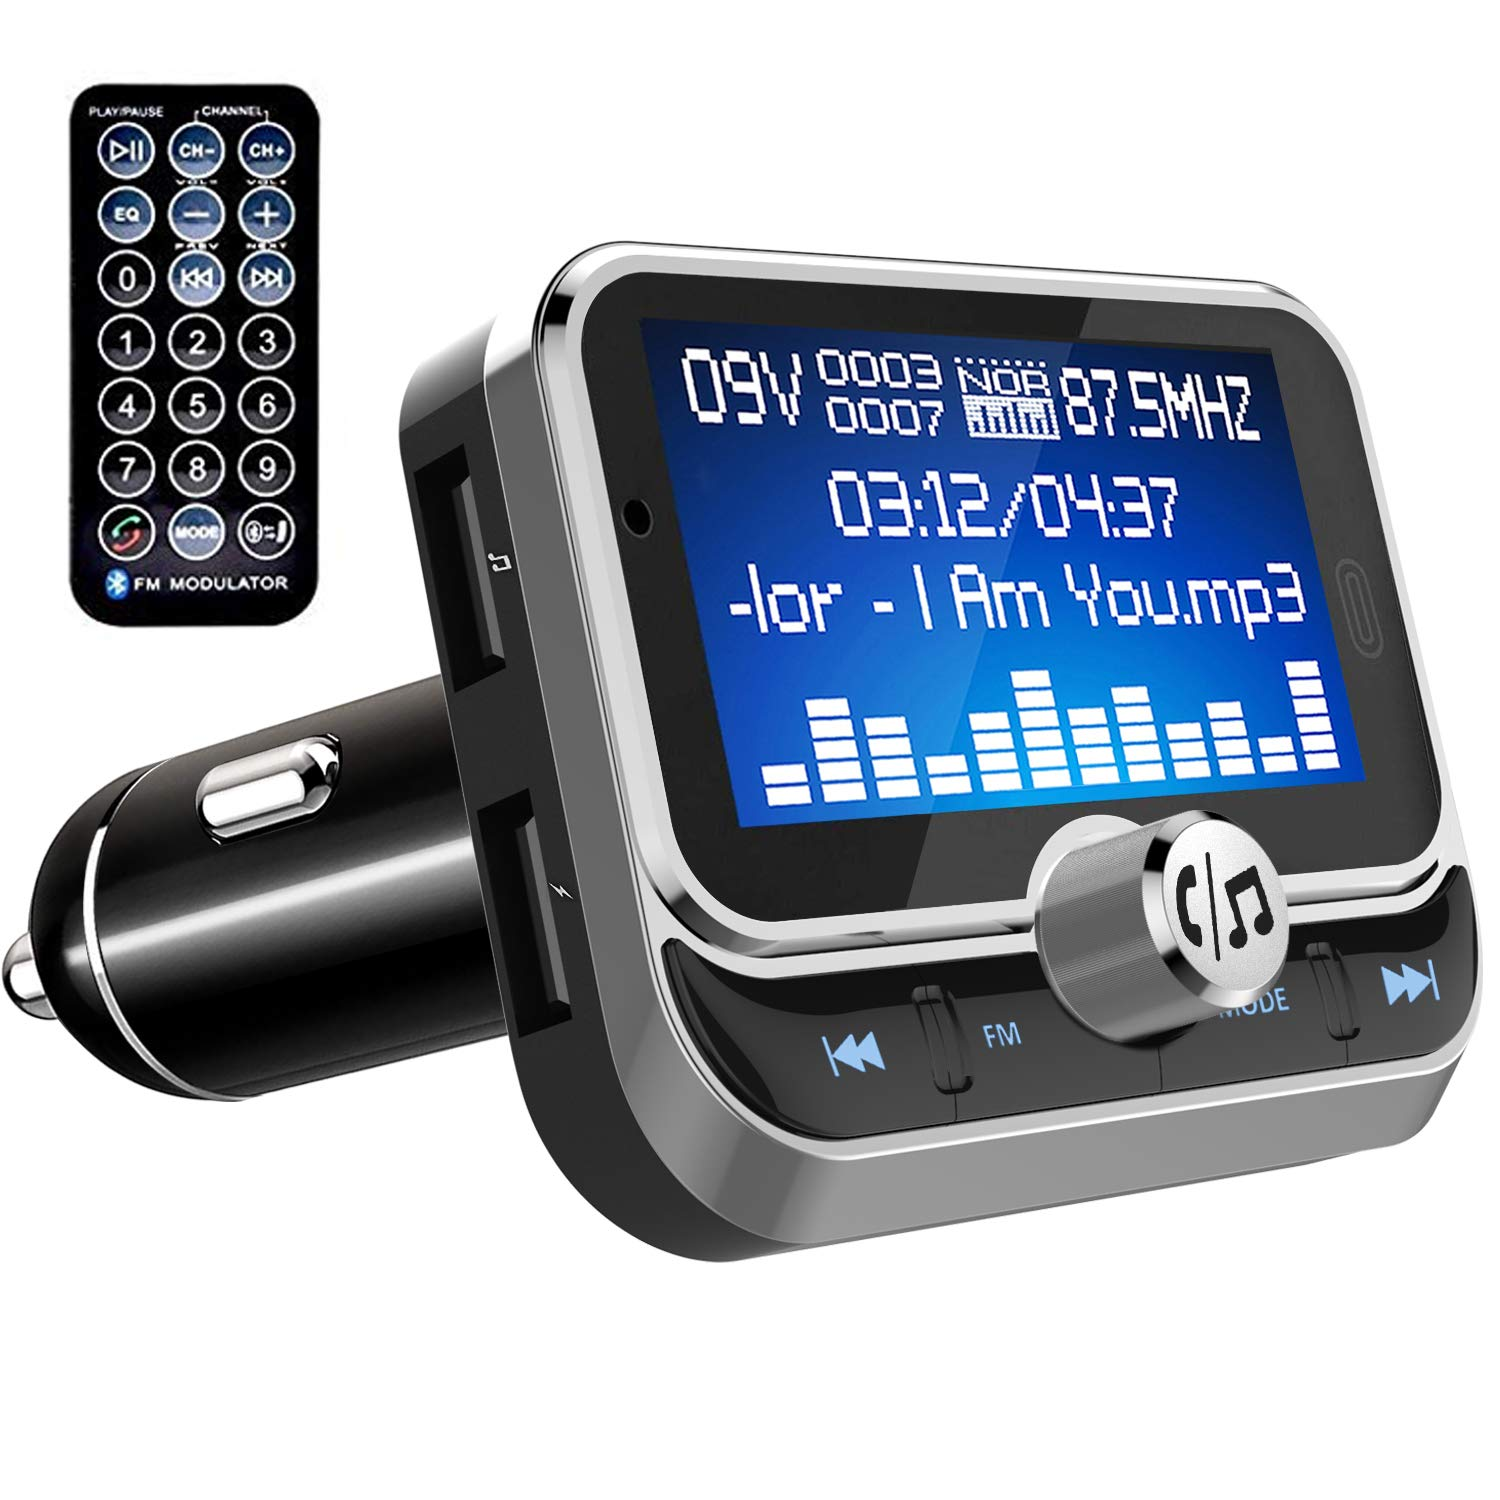 Zintou Bluetooth FM Transmitter for Car,1.8'' Large Display Wireless Radio Adapter Music Player Car Kit with Remote Control,Fast Charger,4 Music Play Modes,Hands Free,AUX Input&Output - BC32RC Silver